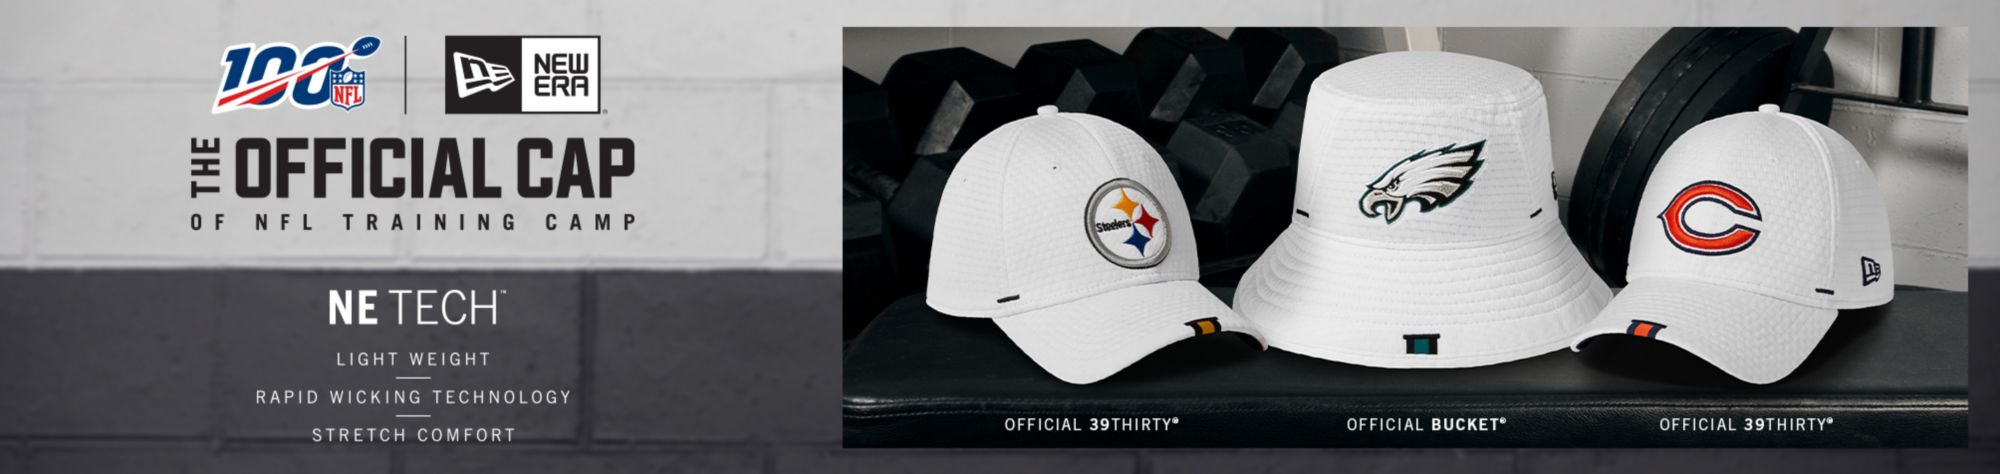 The Official Cap Of the NFL Training Camp